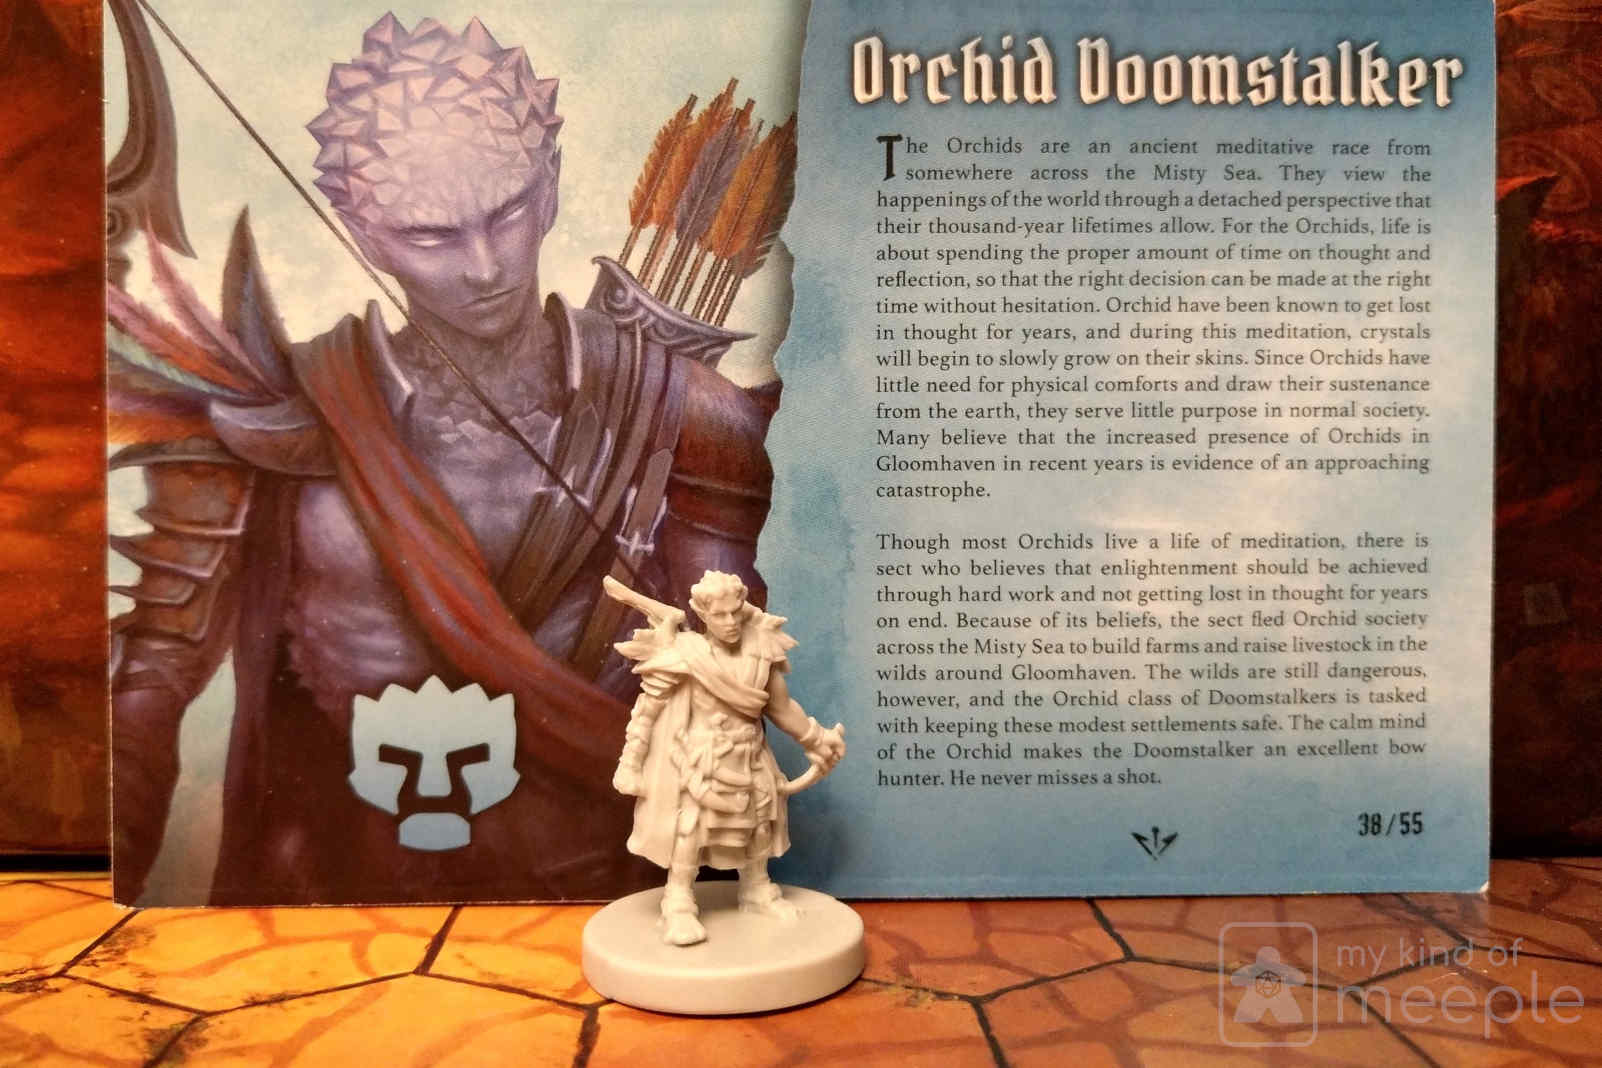 Gloomhaven Doomstalker class miniature and character board